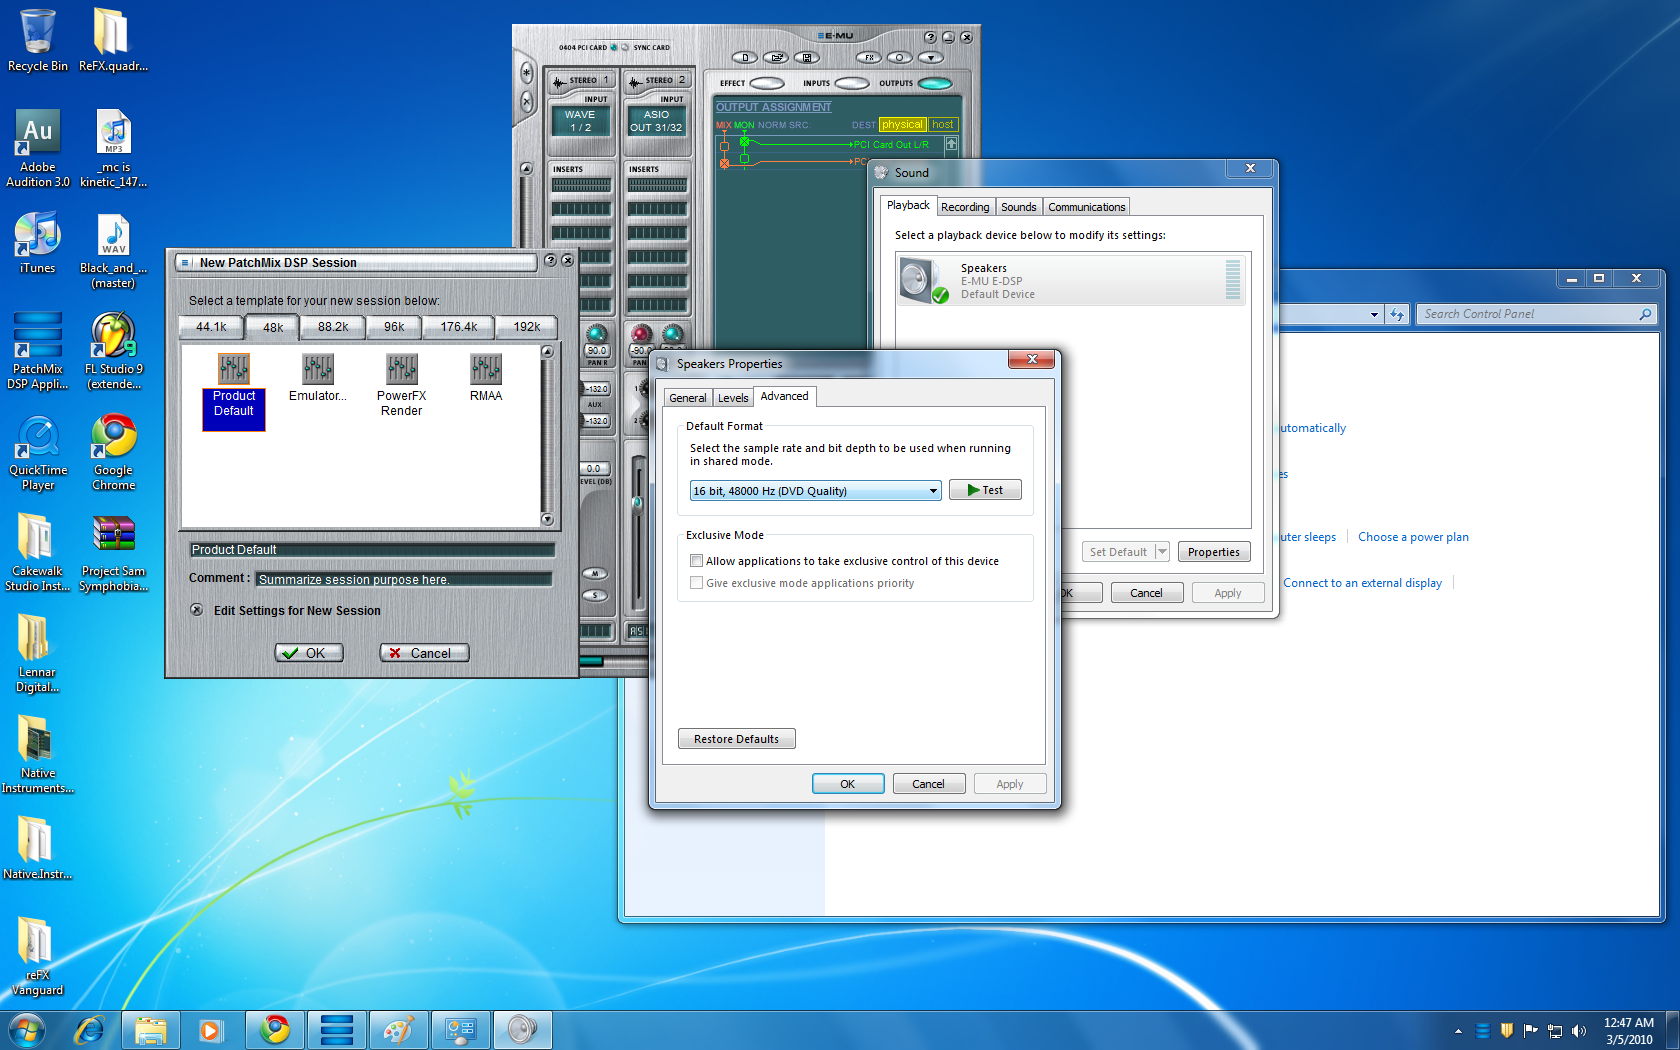 Patch Mix and Windows Sound for Windows 7